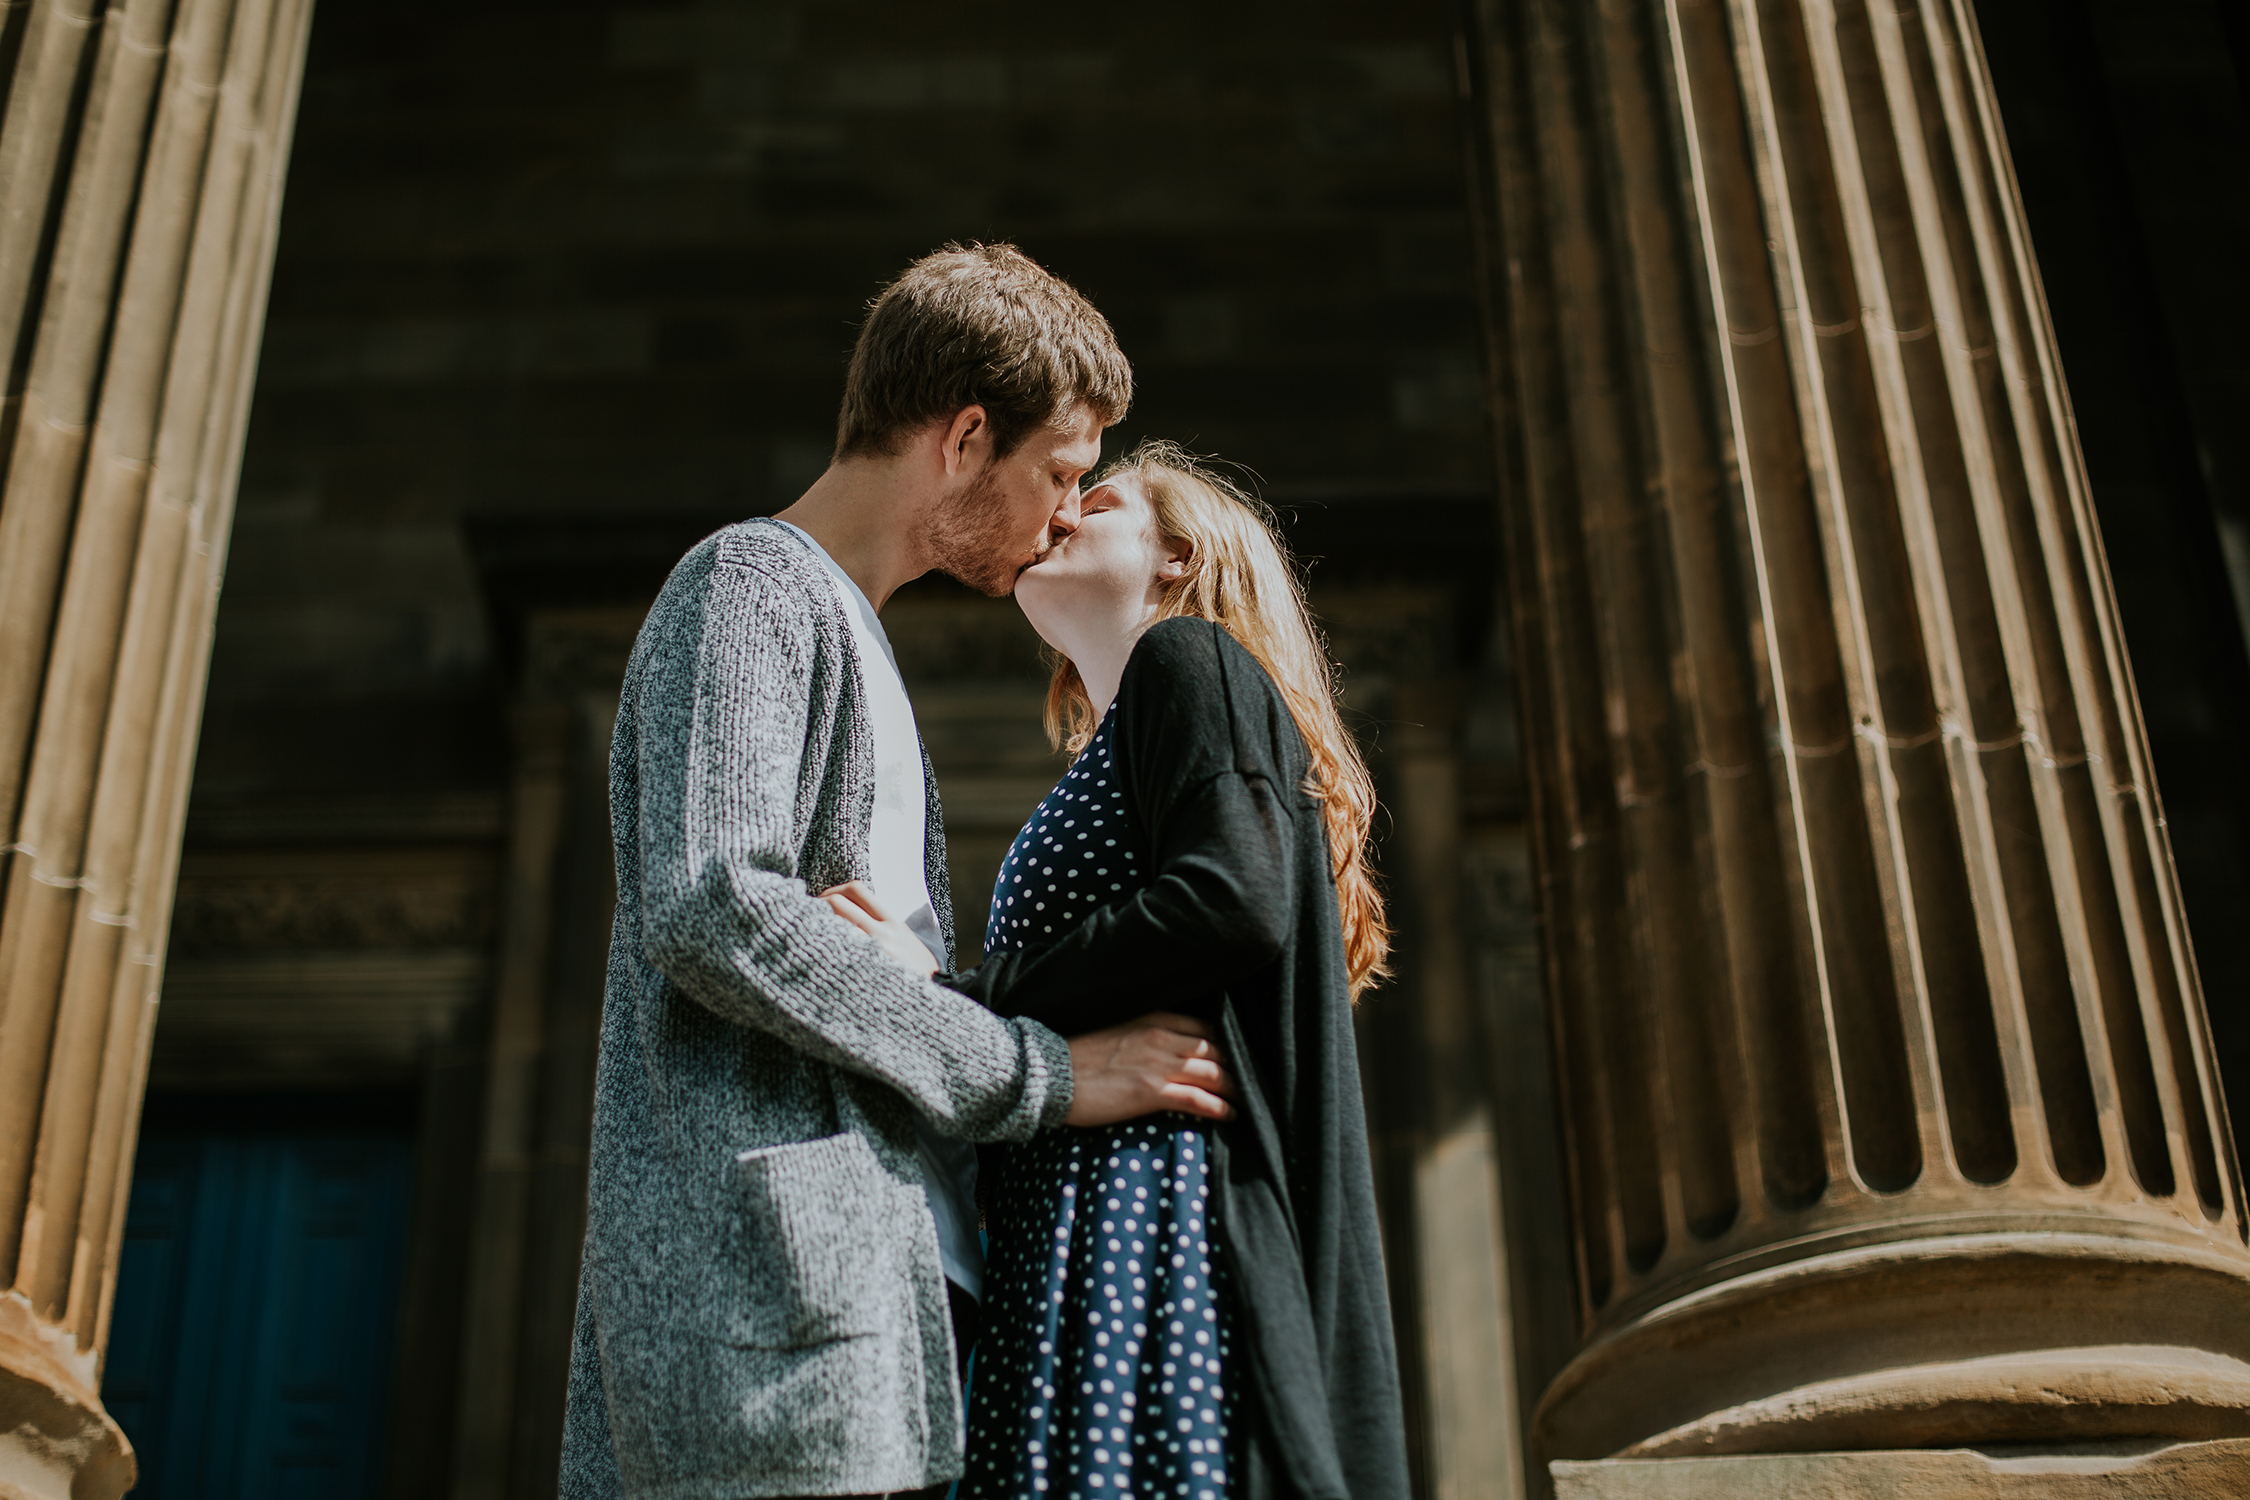 romantic_city_elopement_glasgow_edinburgh_wedding_photographer_17